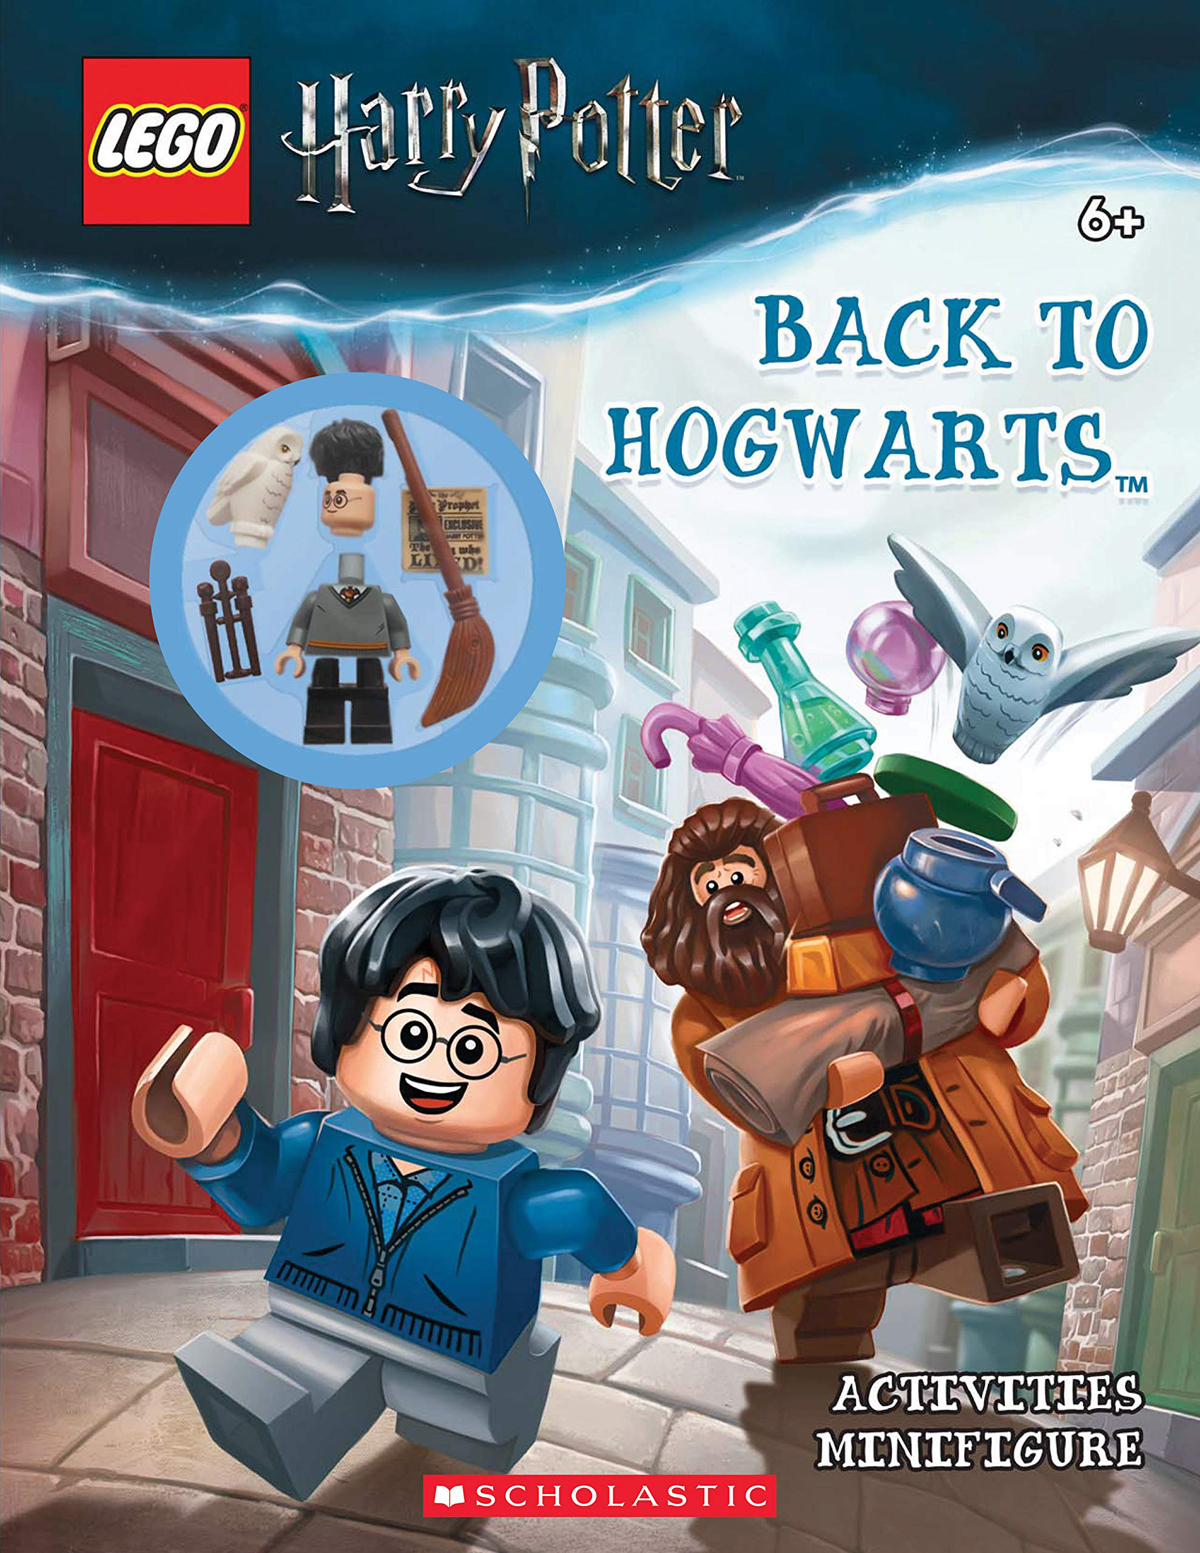 Free LEGO Harry Potter Minifigure With Scholastic's Back To Hogwarts